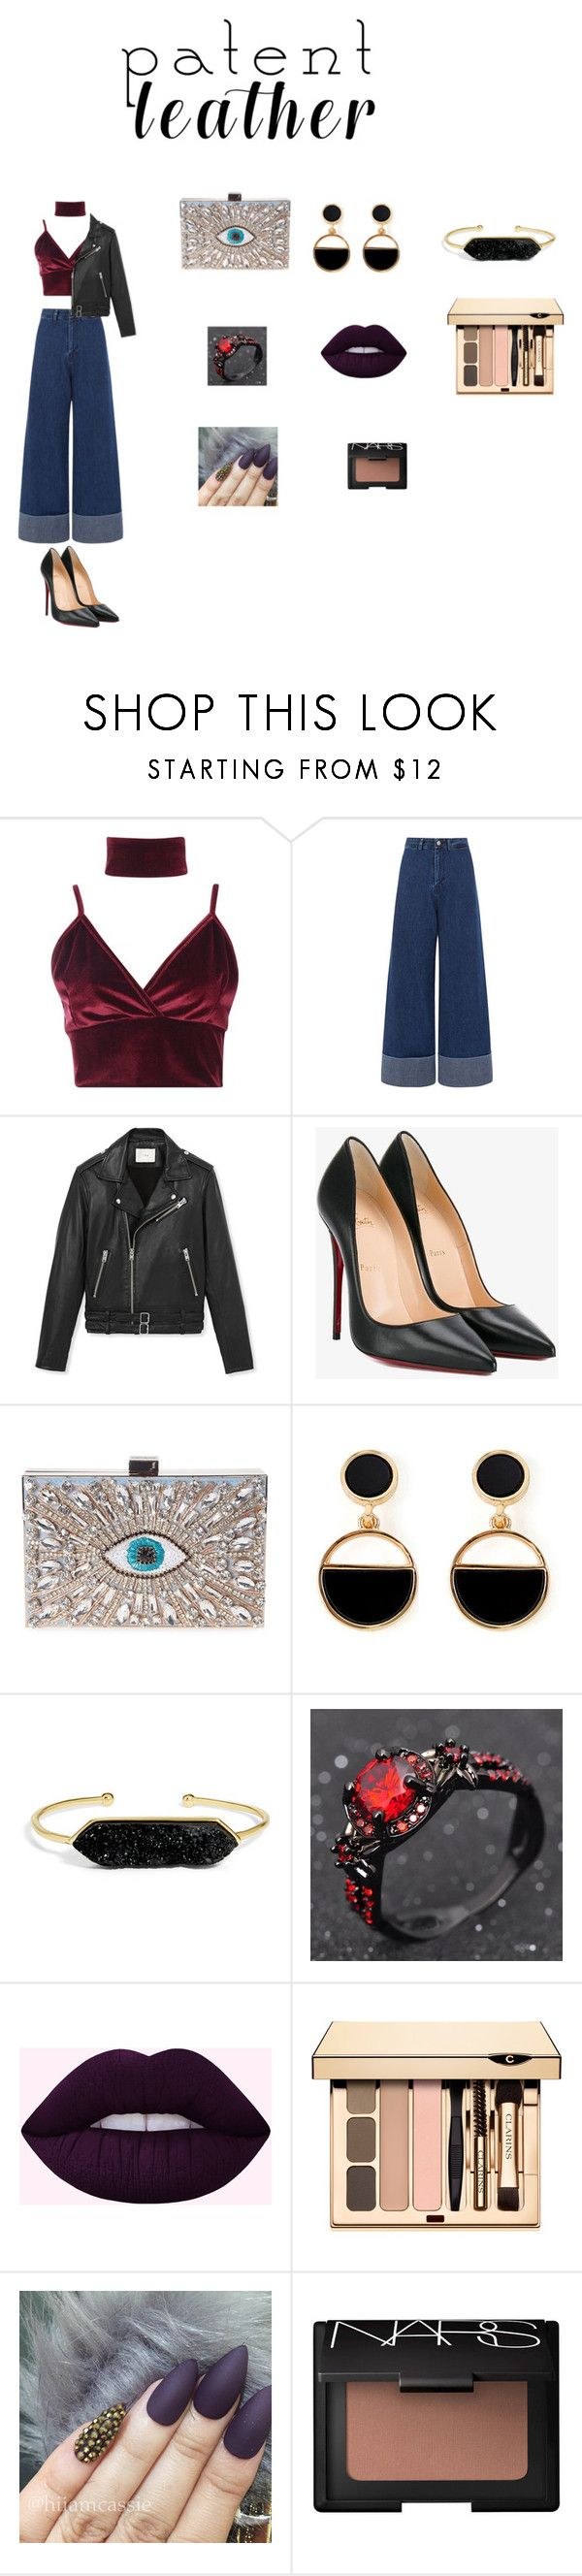 """""""contempo"""" by yesica-rey on Polyvore featuring moda, Boohoo, Sea, New York, IRO, Christian Louboutin, GEDEBE, Warehouse, BaubleBar y NARS Cosmetics"""